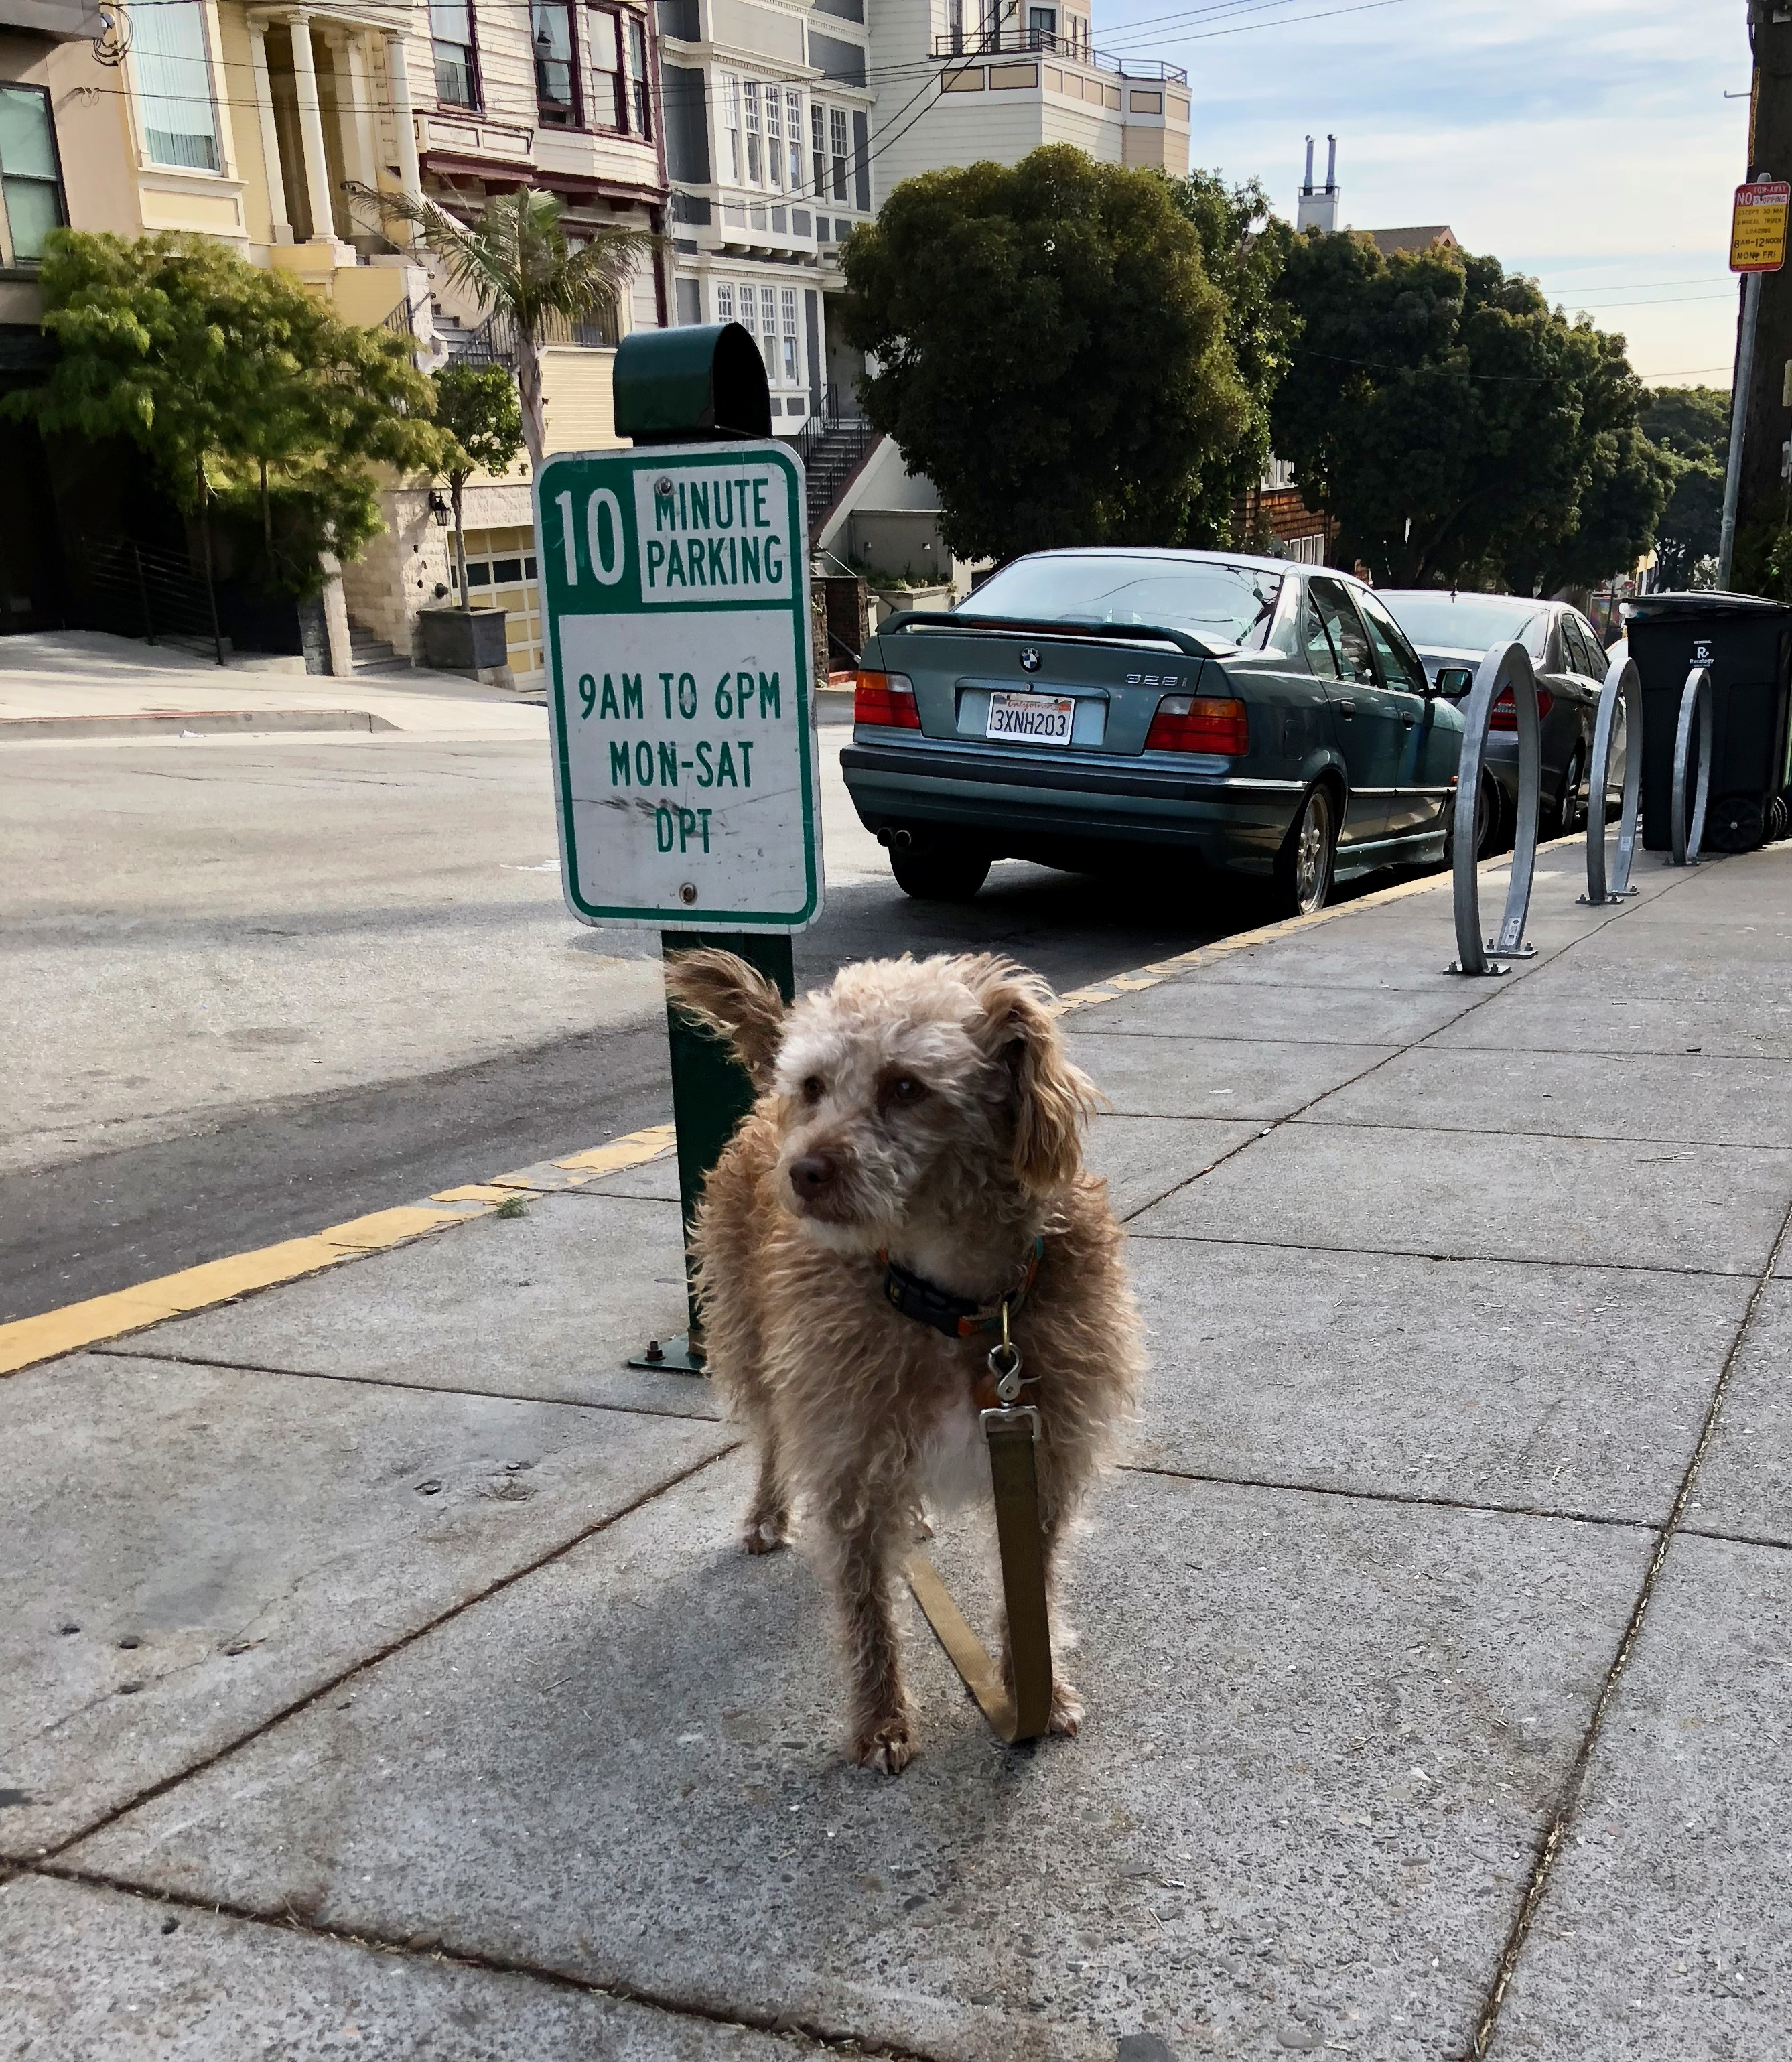 Terrier Poodle Mix Tied To No Parking Sign